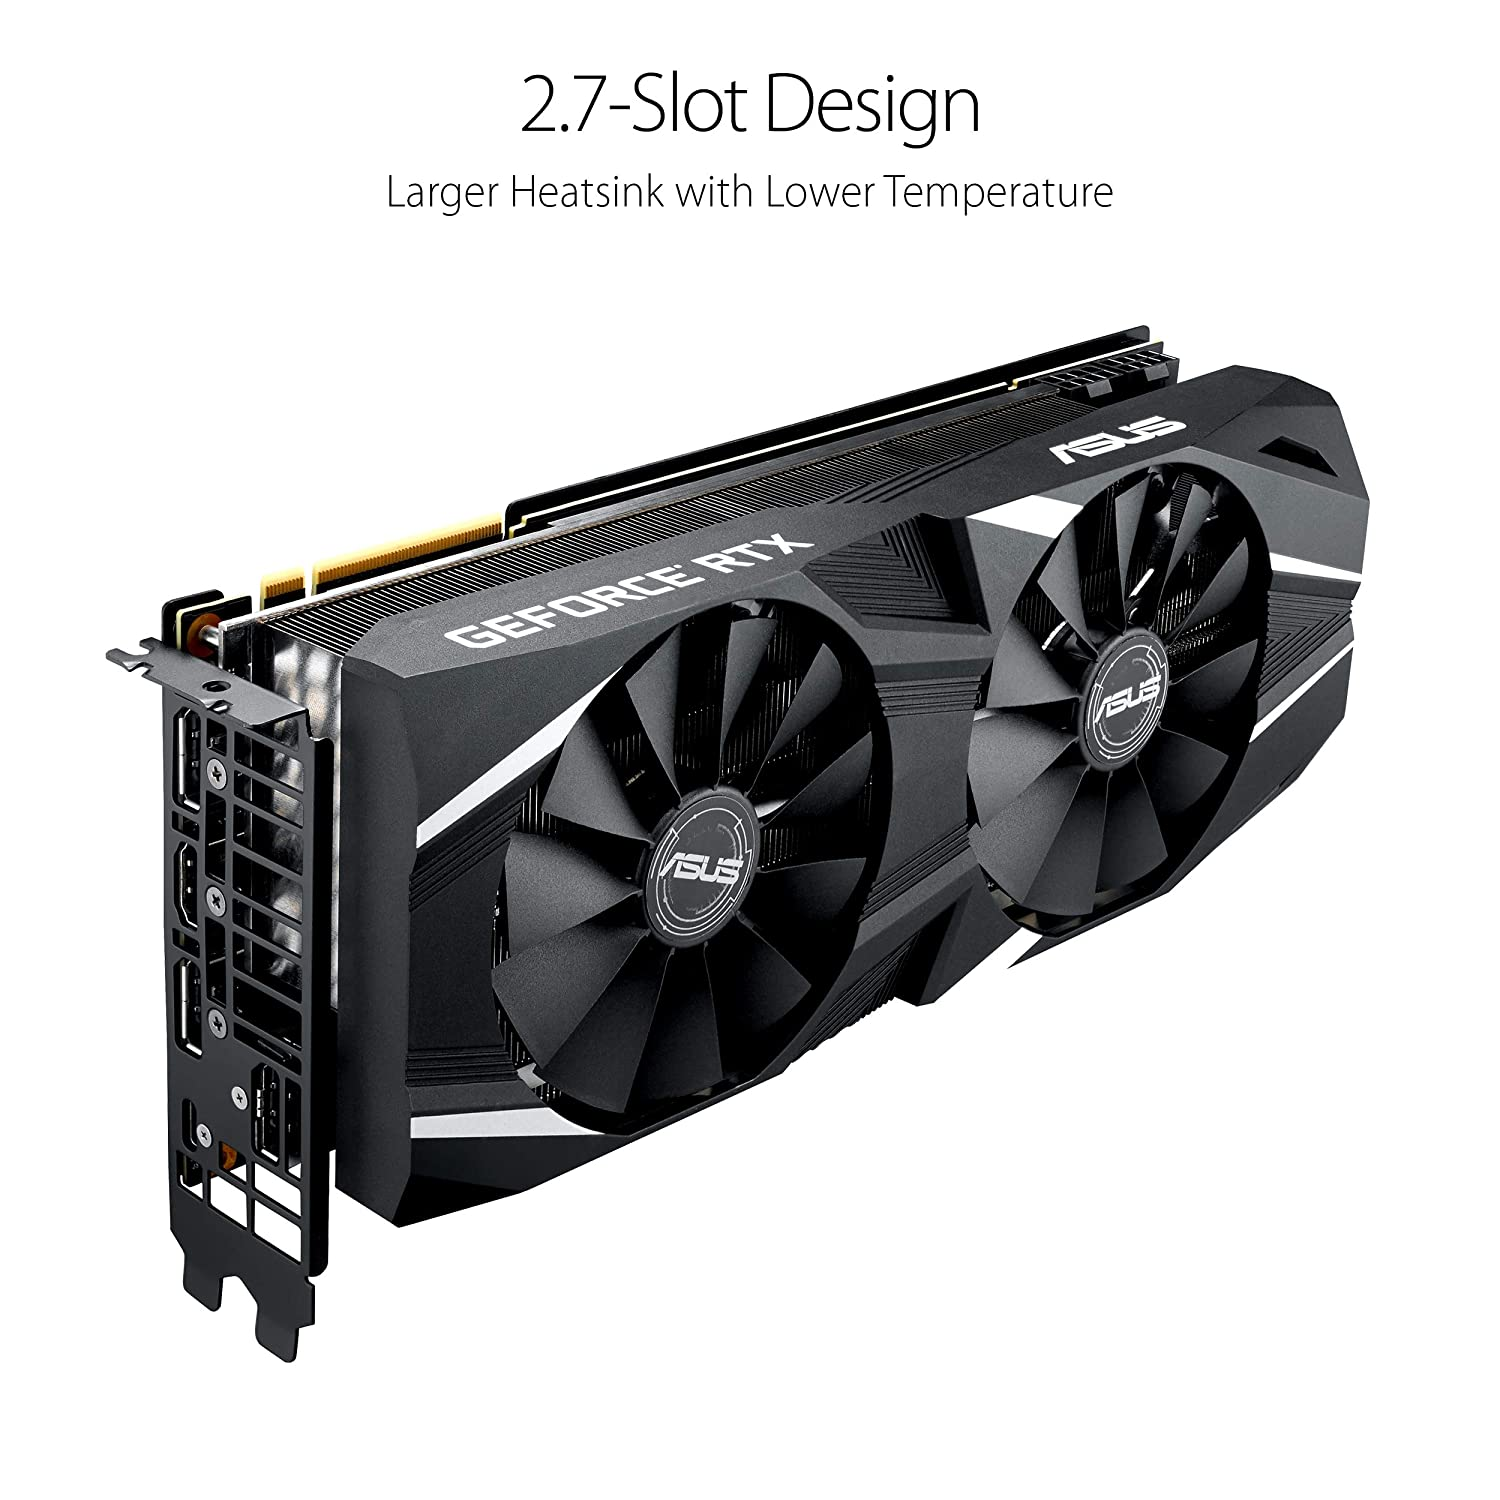 ASUS GeForce RTX 2080 8G GDDR6 Dual-Fan Edition VR Ready HDMI DP USB Type-C  Graphics Card (DUAL-RTX-2080-8G)